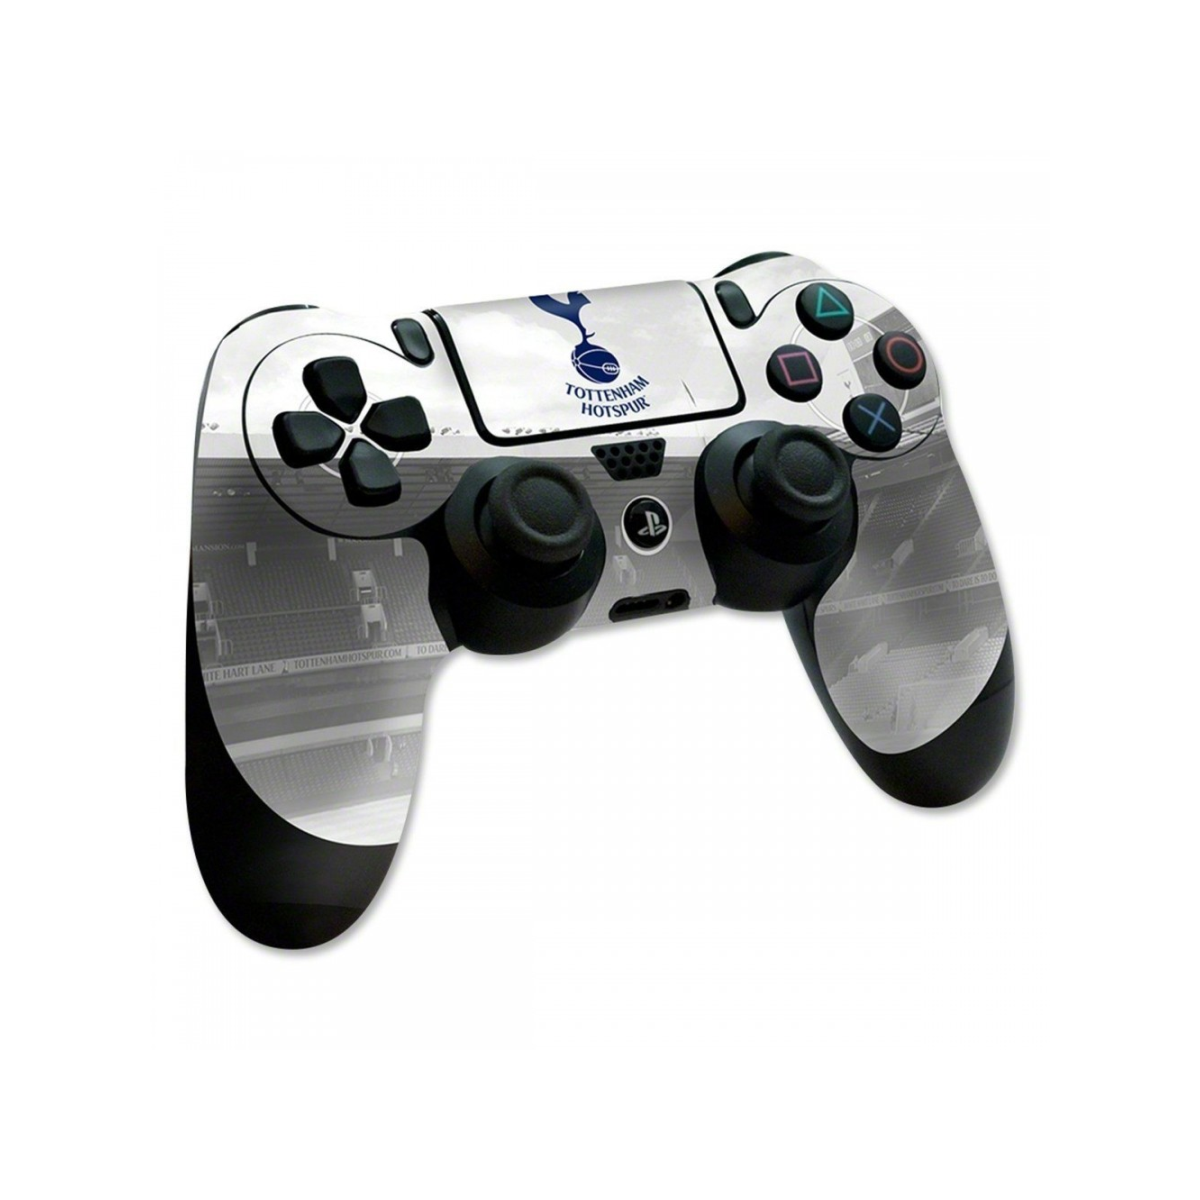 inToro Tottenham FC Skin for PlayStation 4 Controller